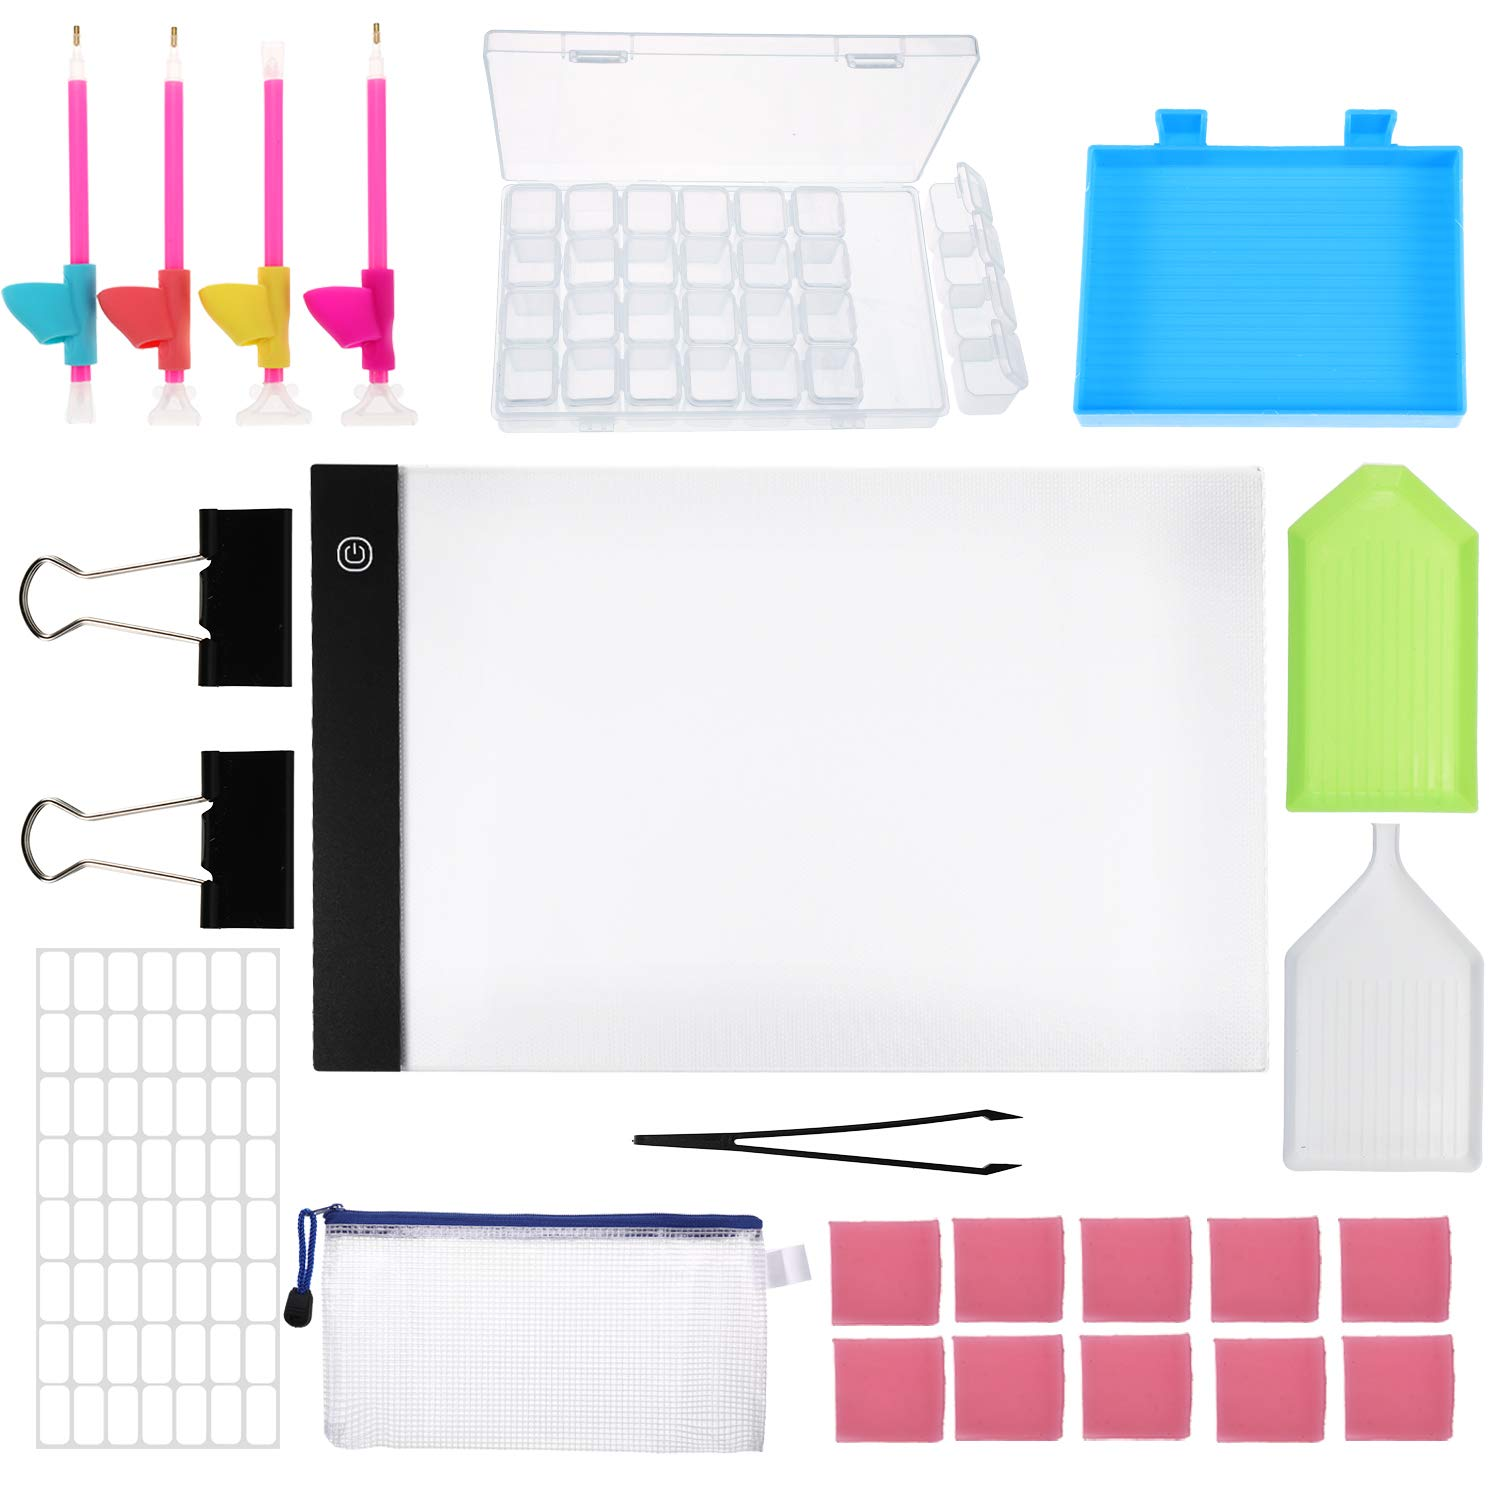 Blulu A4 LED Light Box Light Board with Diamond Painting Tools and Black Binder Clips, Silicone Pencil Holder Grips